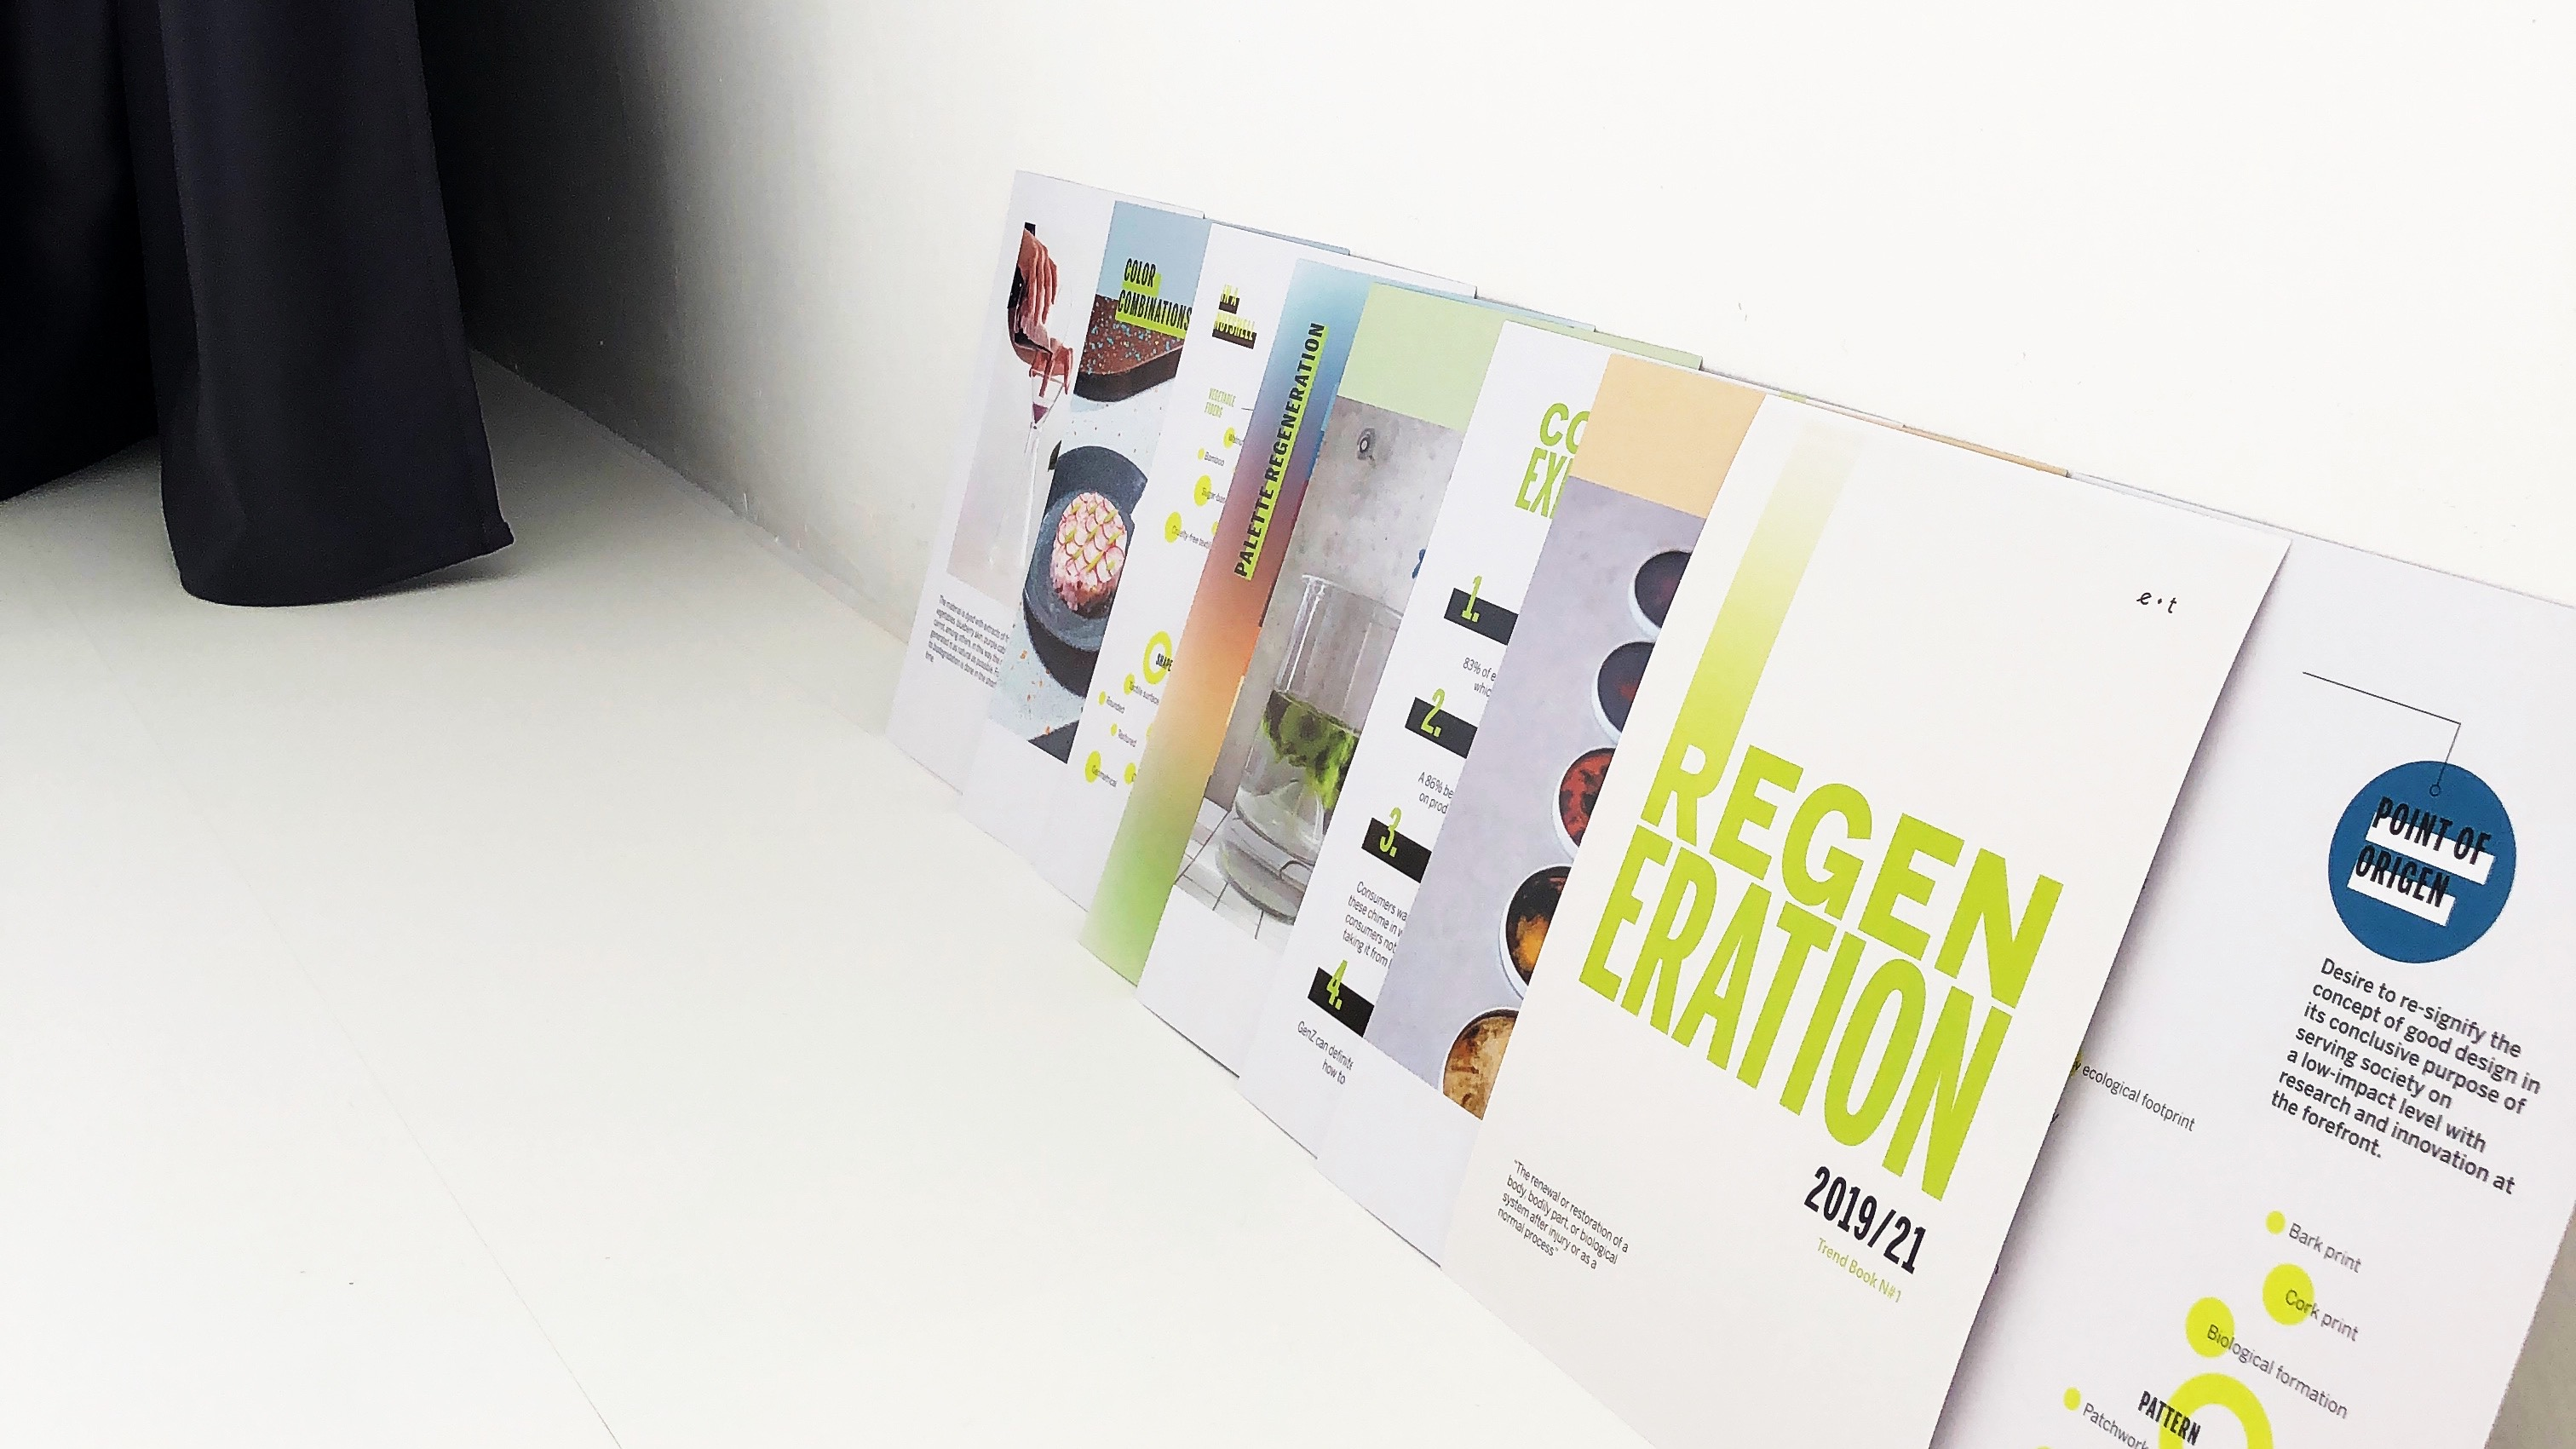 REGENERATION - Our Trend Book No.1 is published